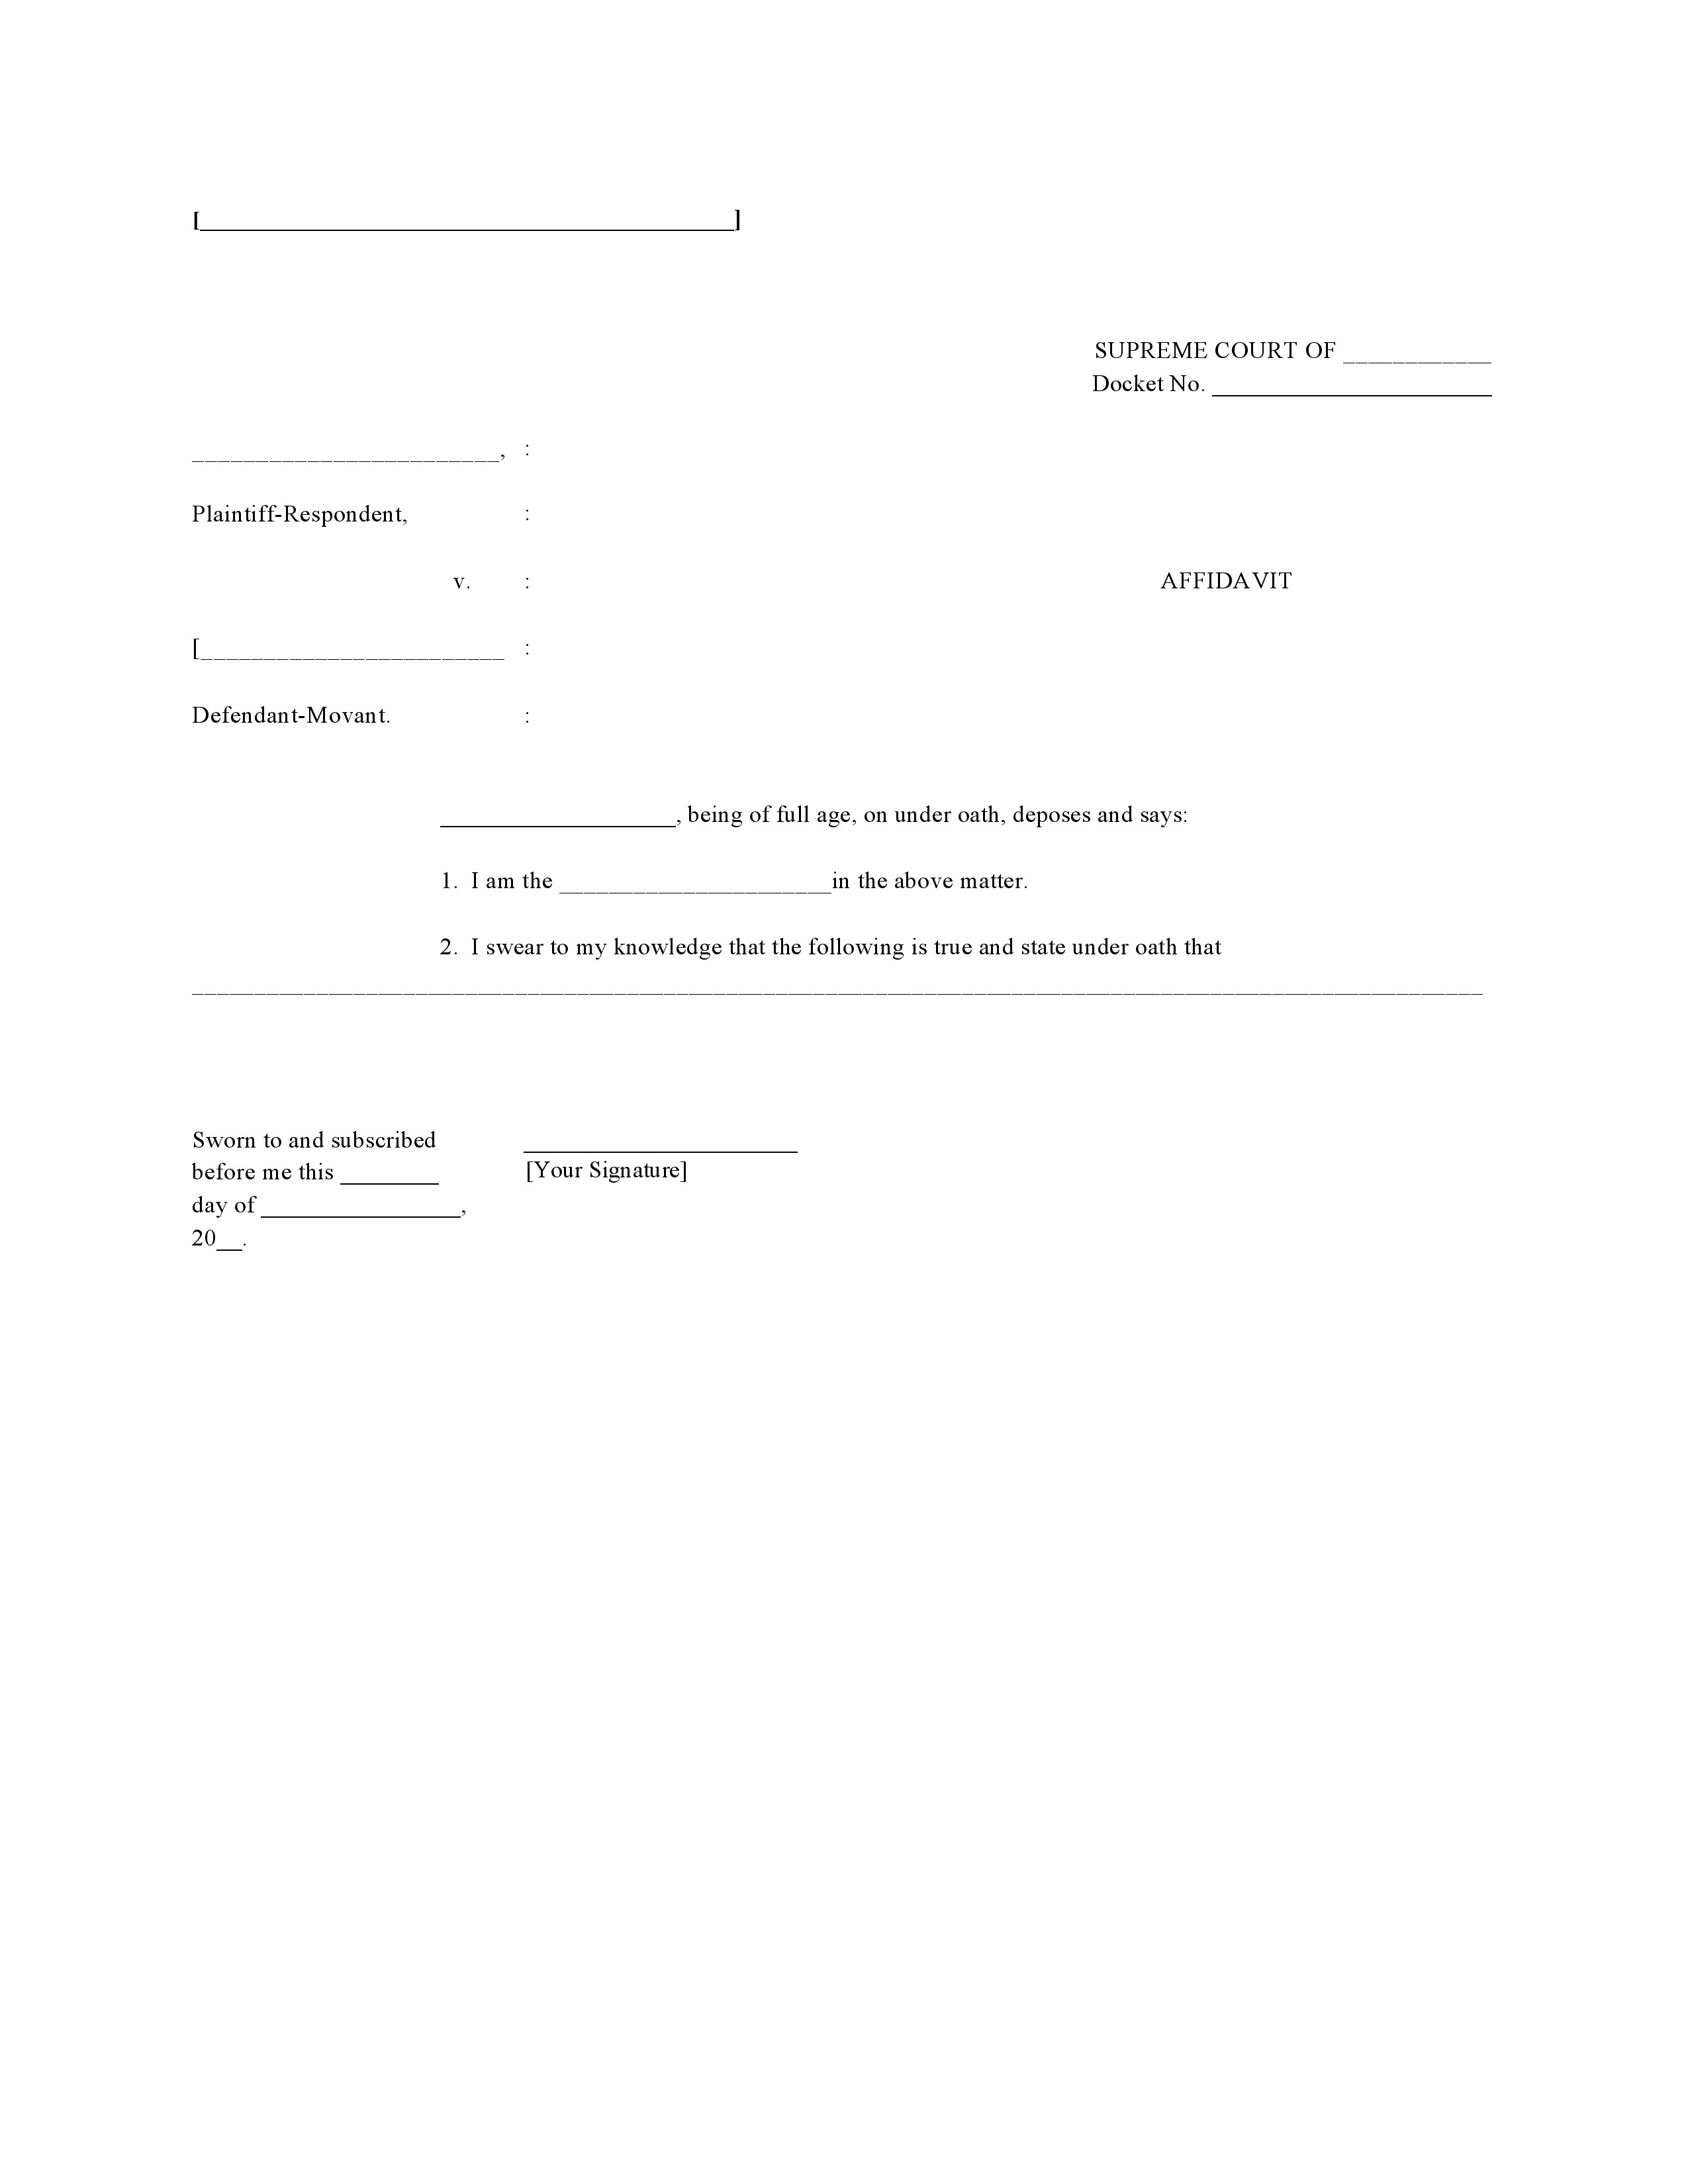 Doc415537 Affidavit Word Template Affidavit Form 80 Similar – Affidavit Sample Format